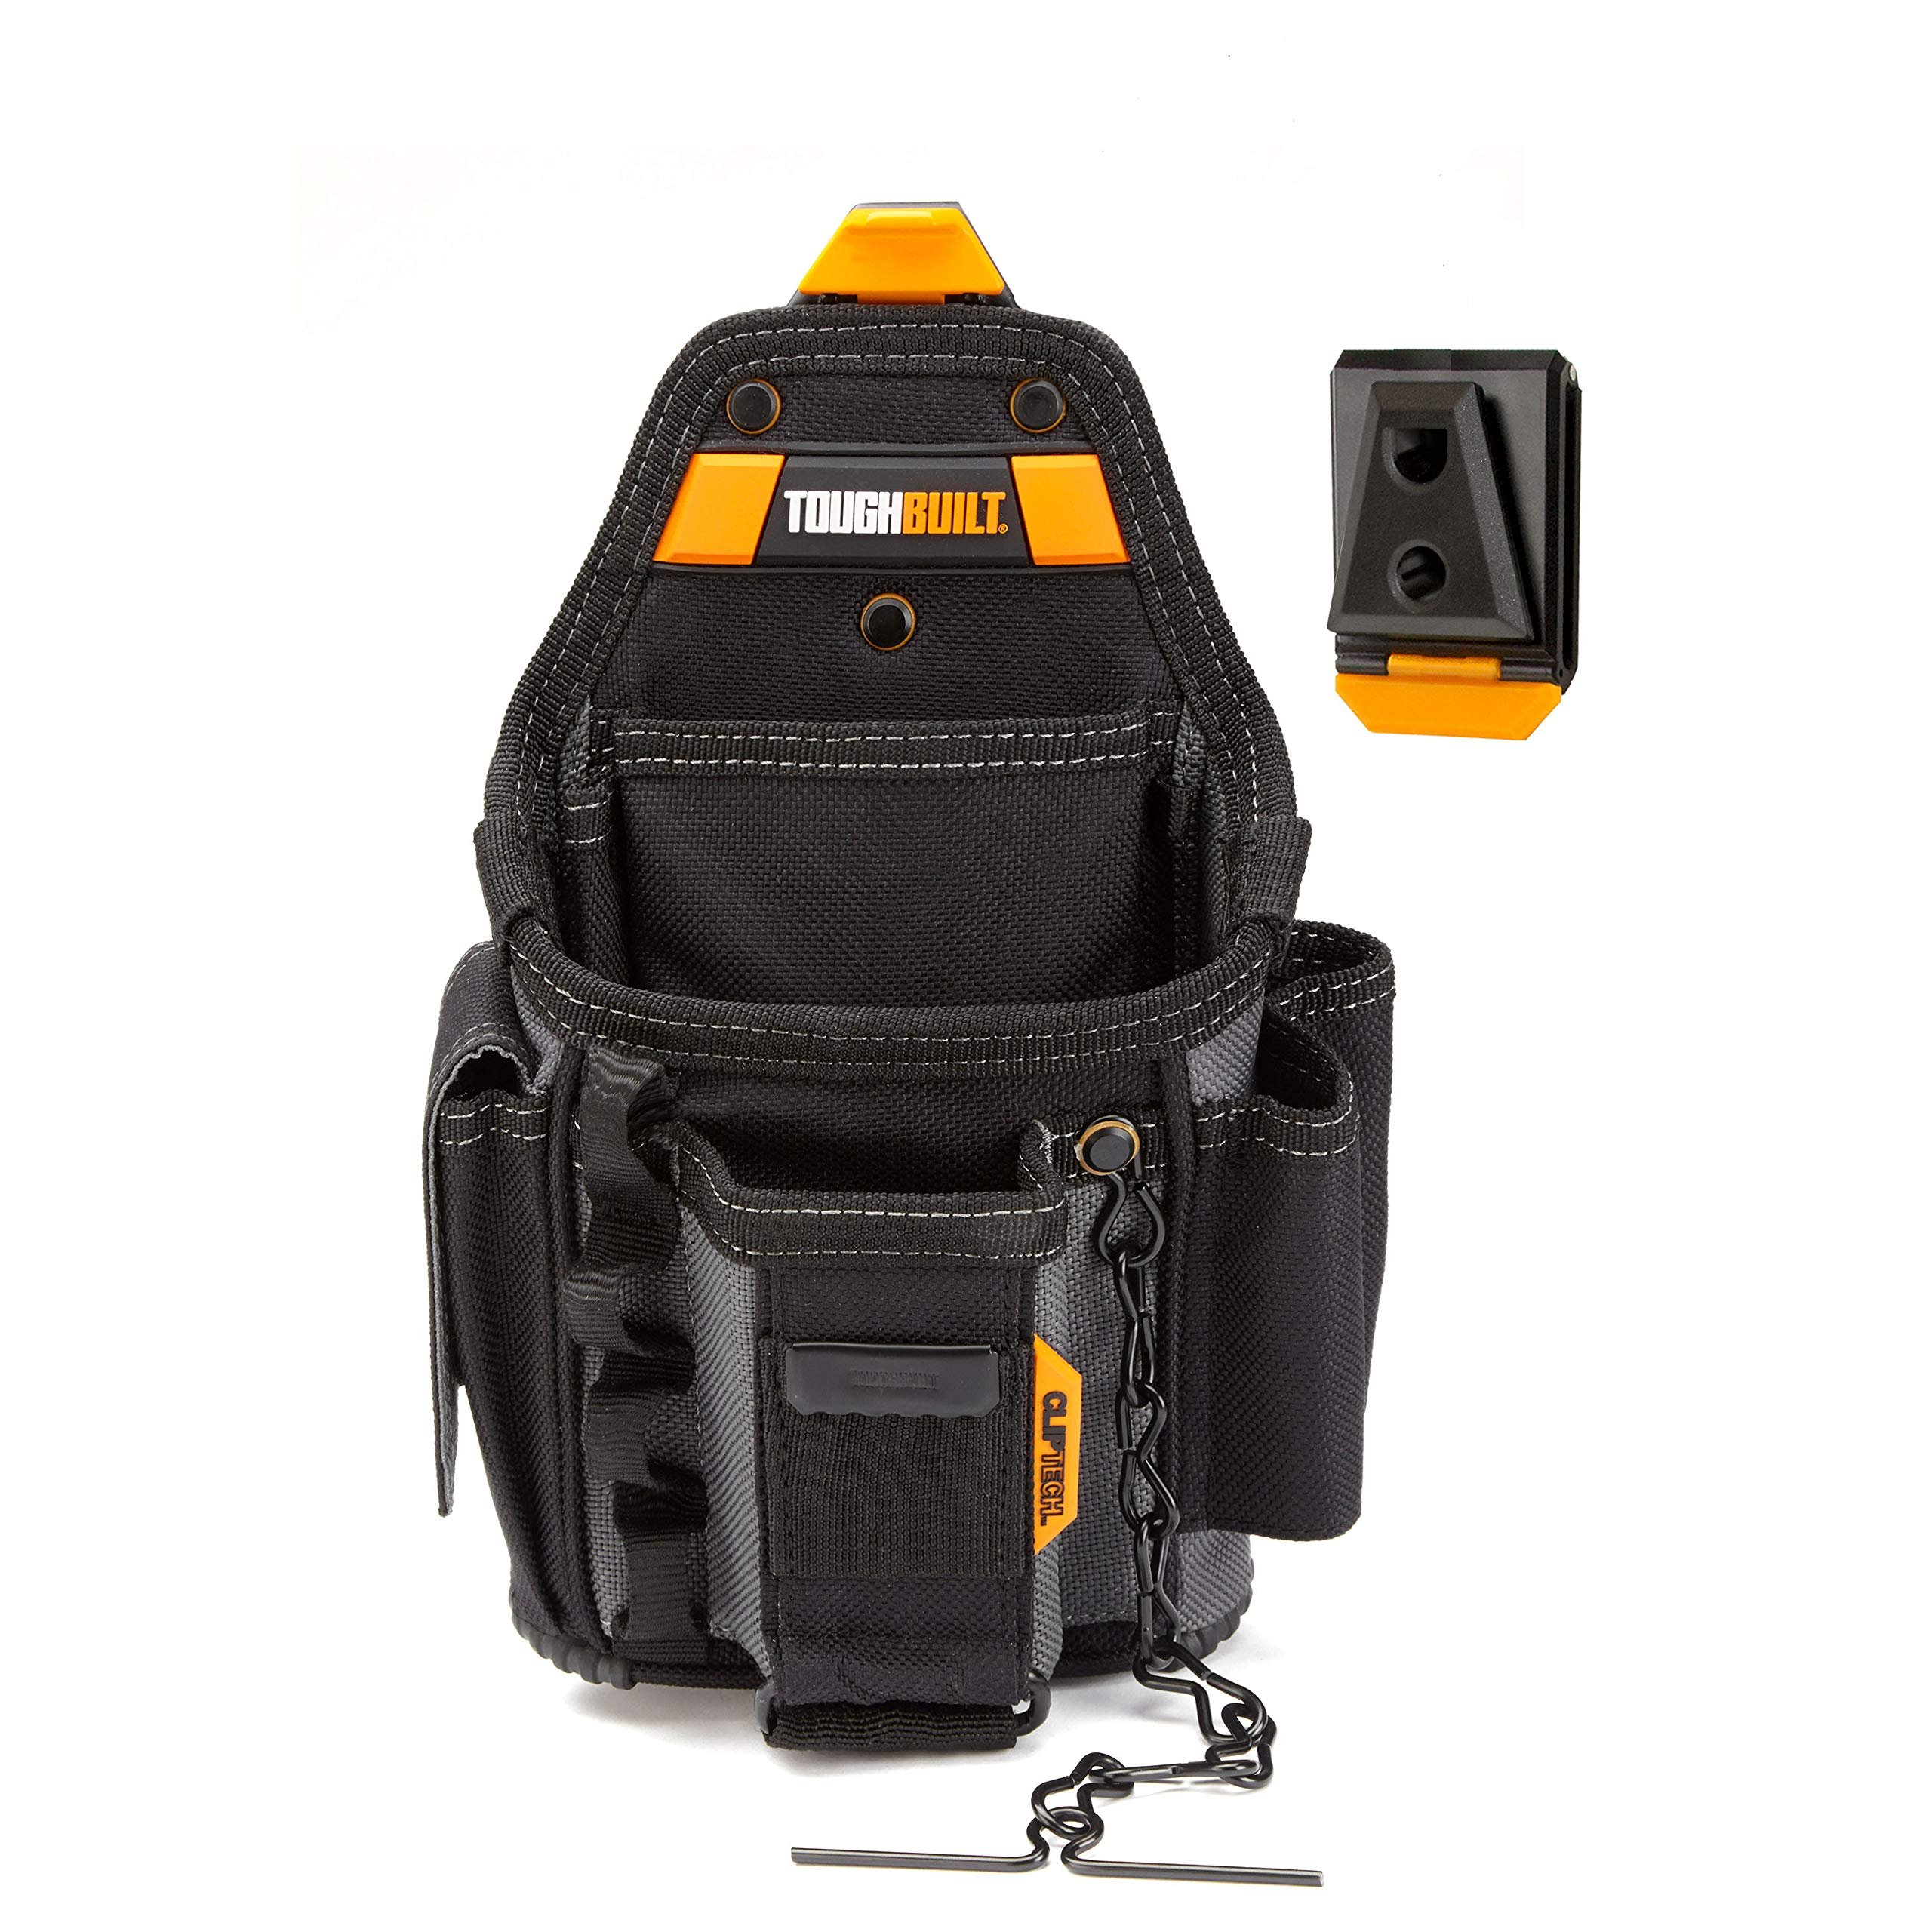 Toughbuilt Electrician ClipTech Pouch and Hub - 13 Pockets and Loops - Small by ToughBuilt